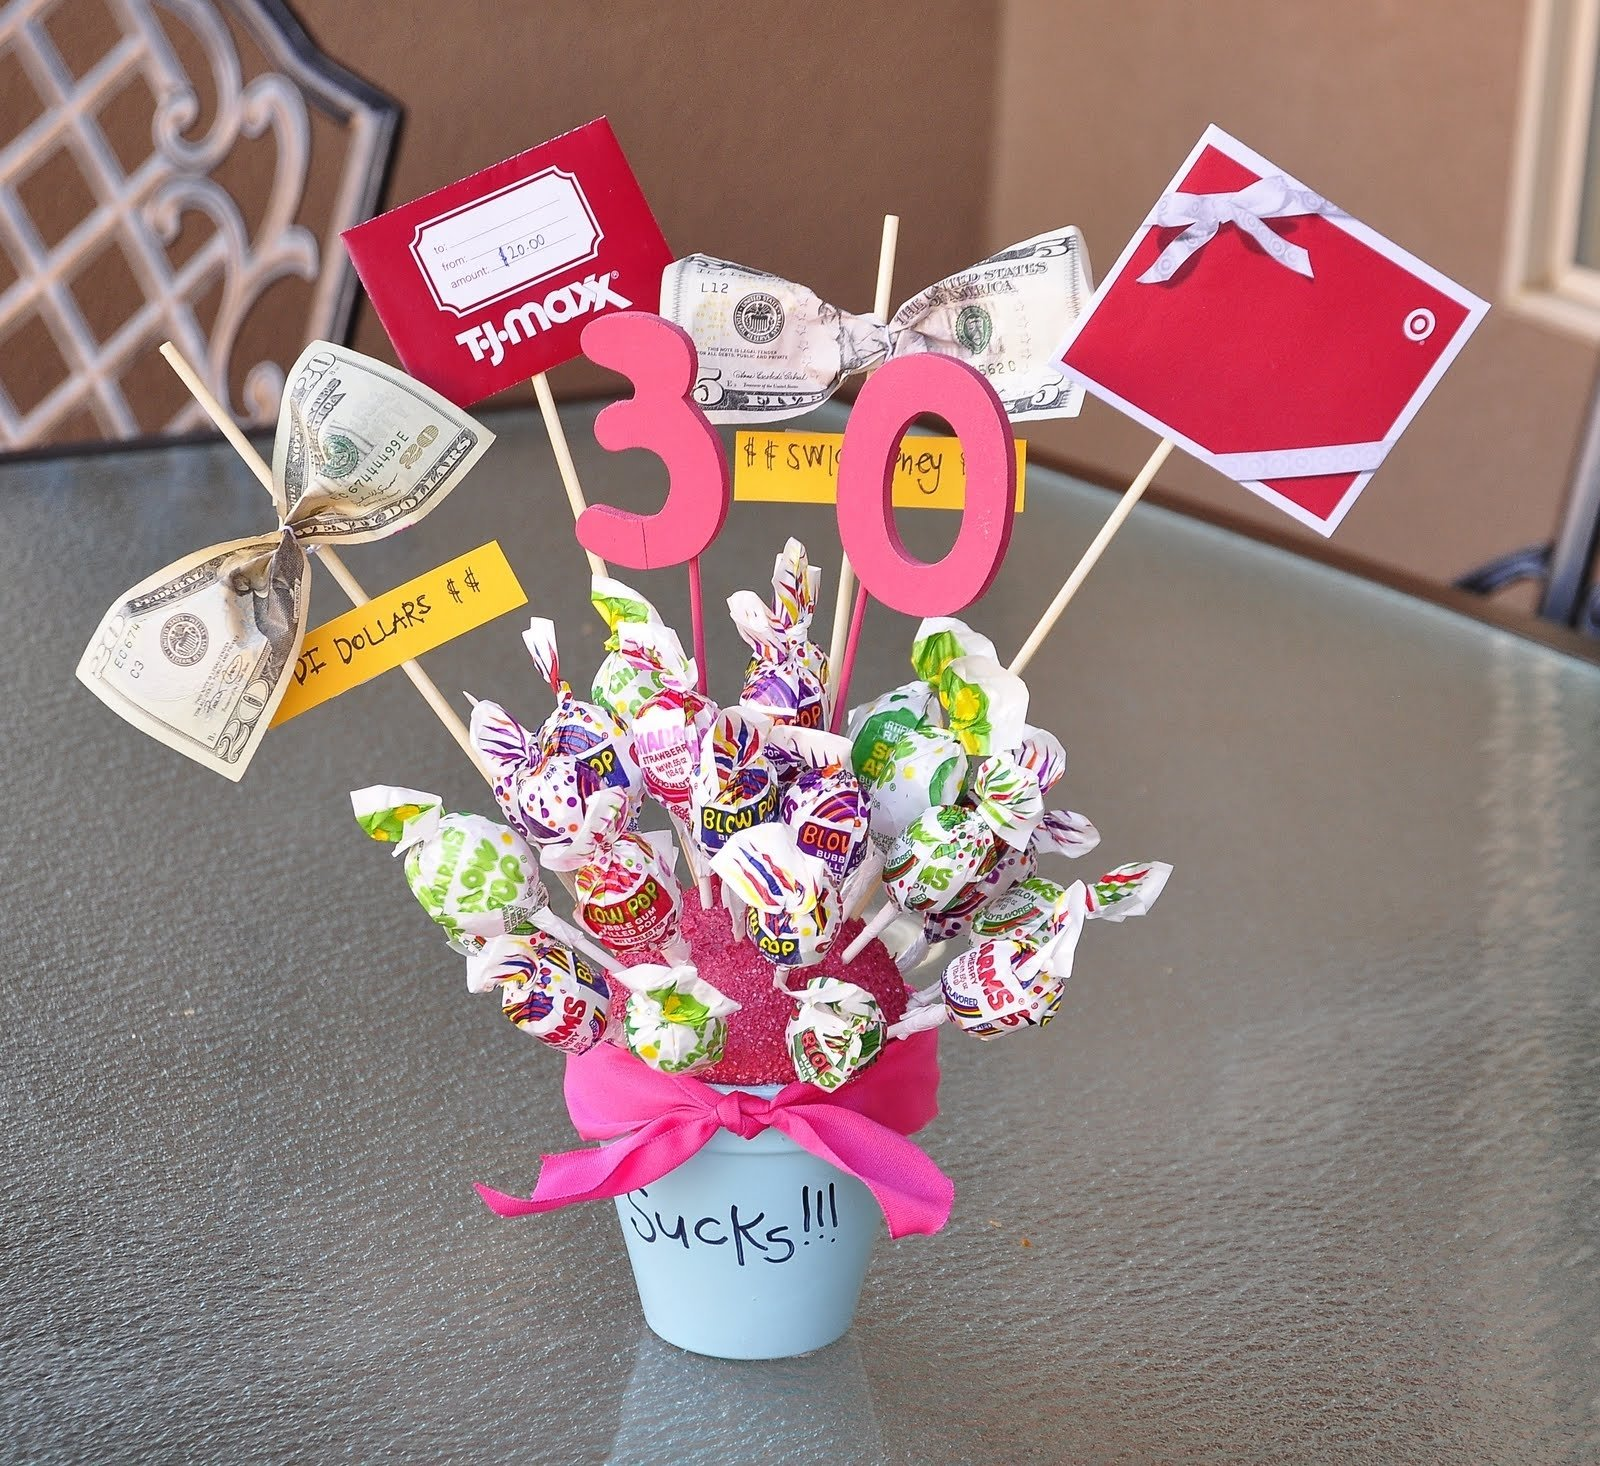 10 Unique Gift Ideas For Girl Best Friend 30th birthday party 30th birthdays and gift 1 2020